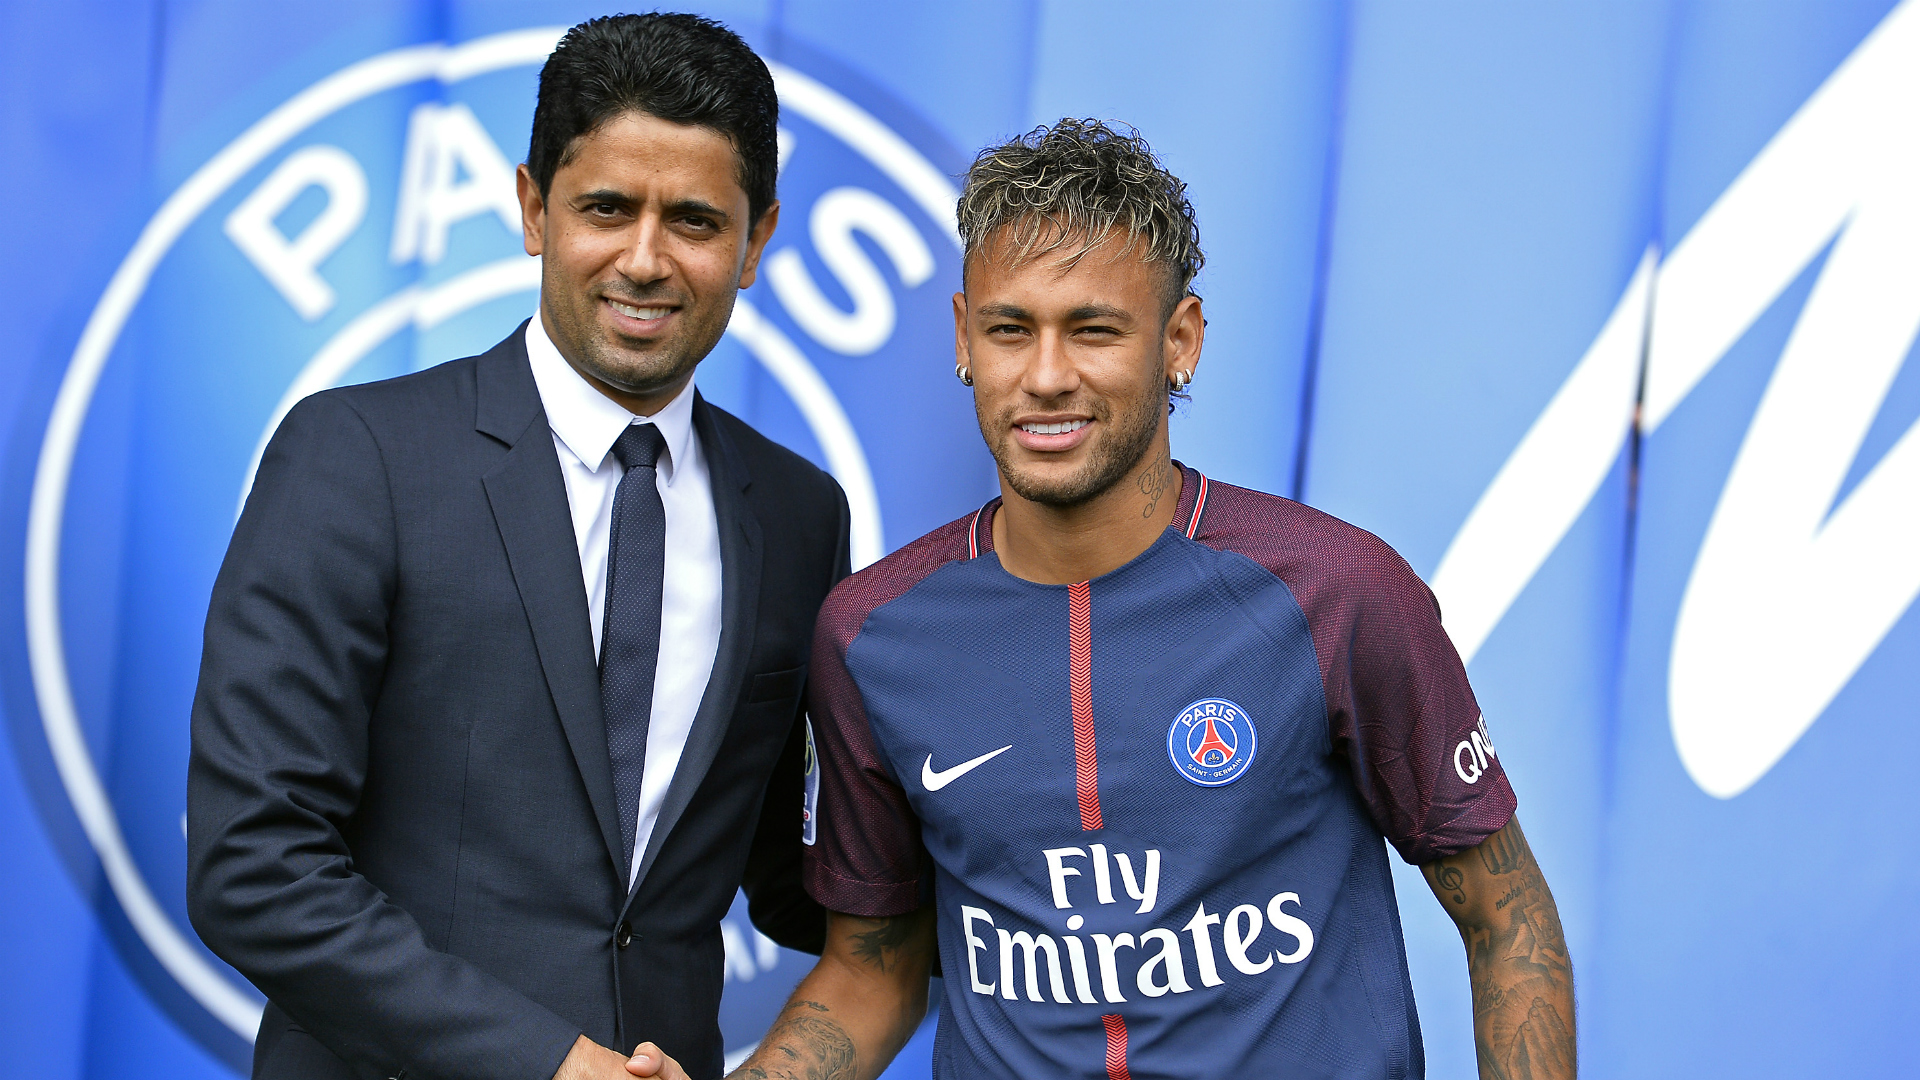 After Splurging On Neymar, PSG Now Eye Another Record Signing